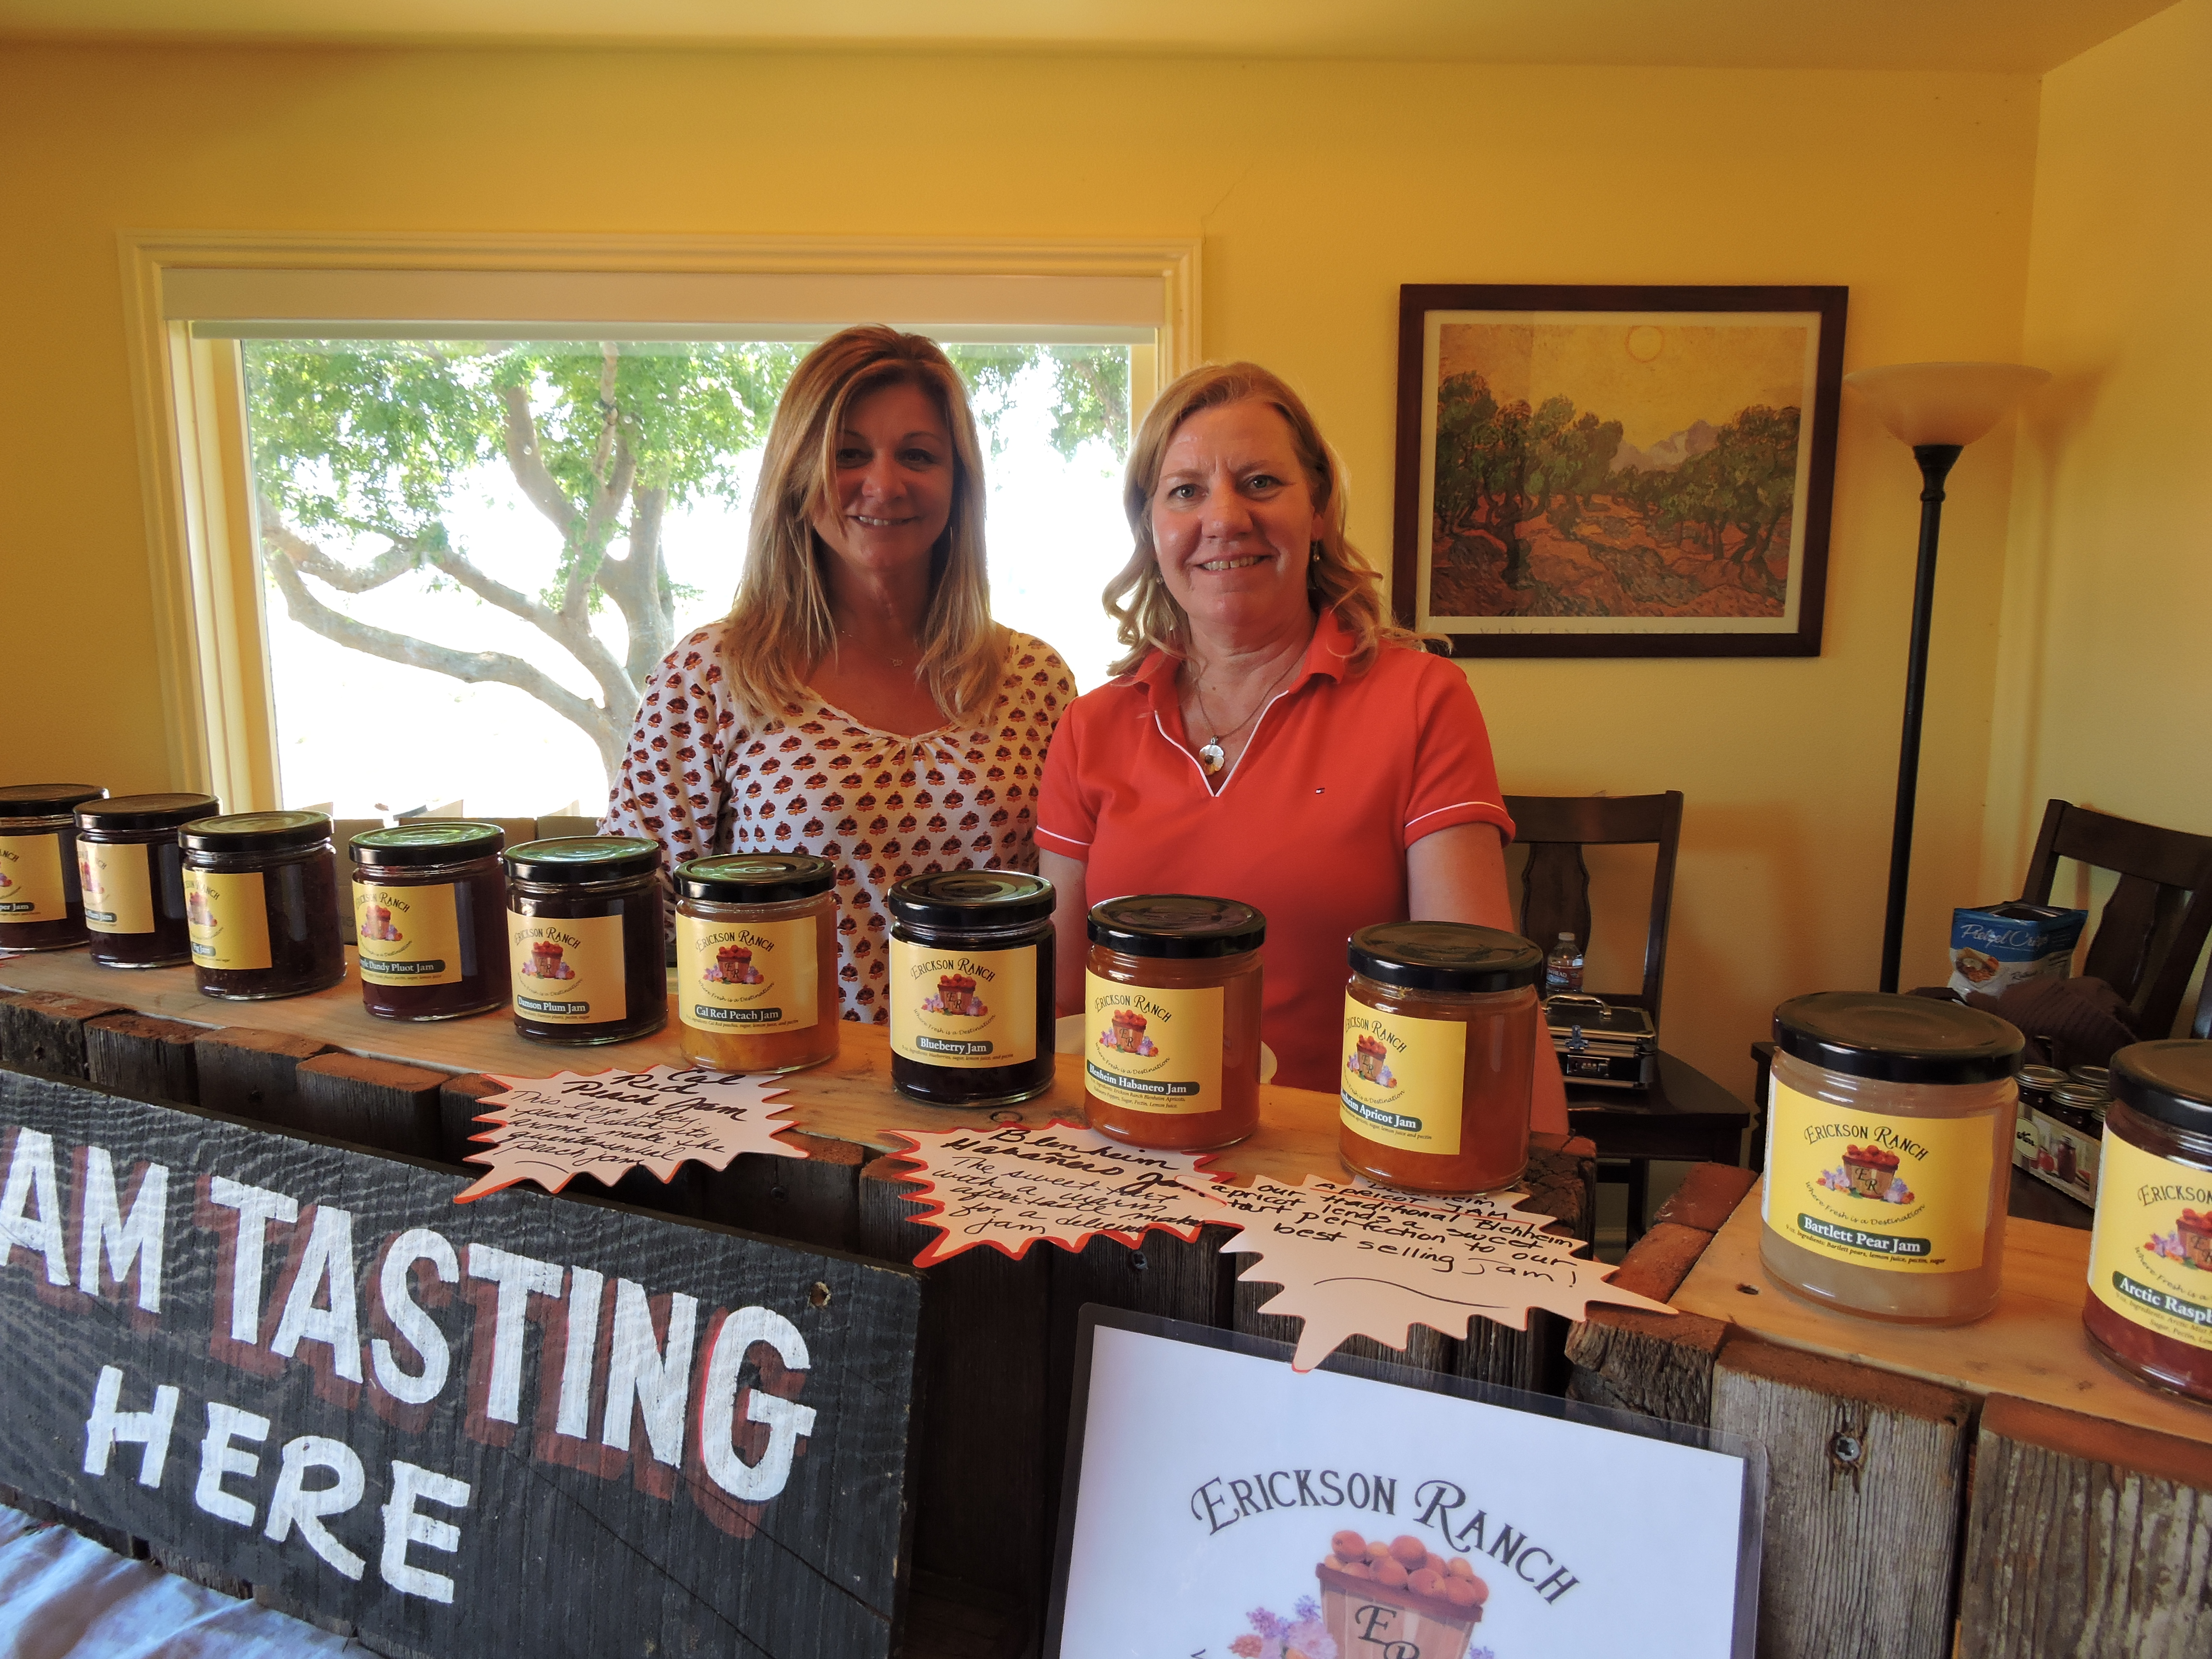 What's your favorite flavor of Erickson Ranch jam? The popular Suisun Valley farm provided samples of their famous jam at Il Fiorello Olive Oil Company.